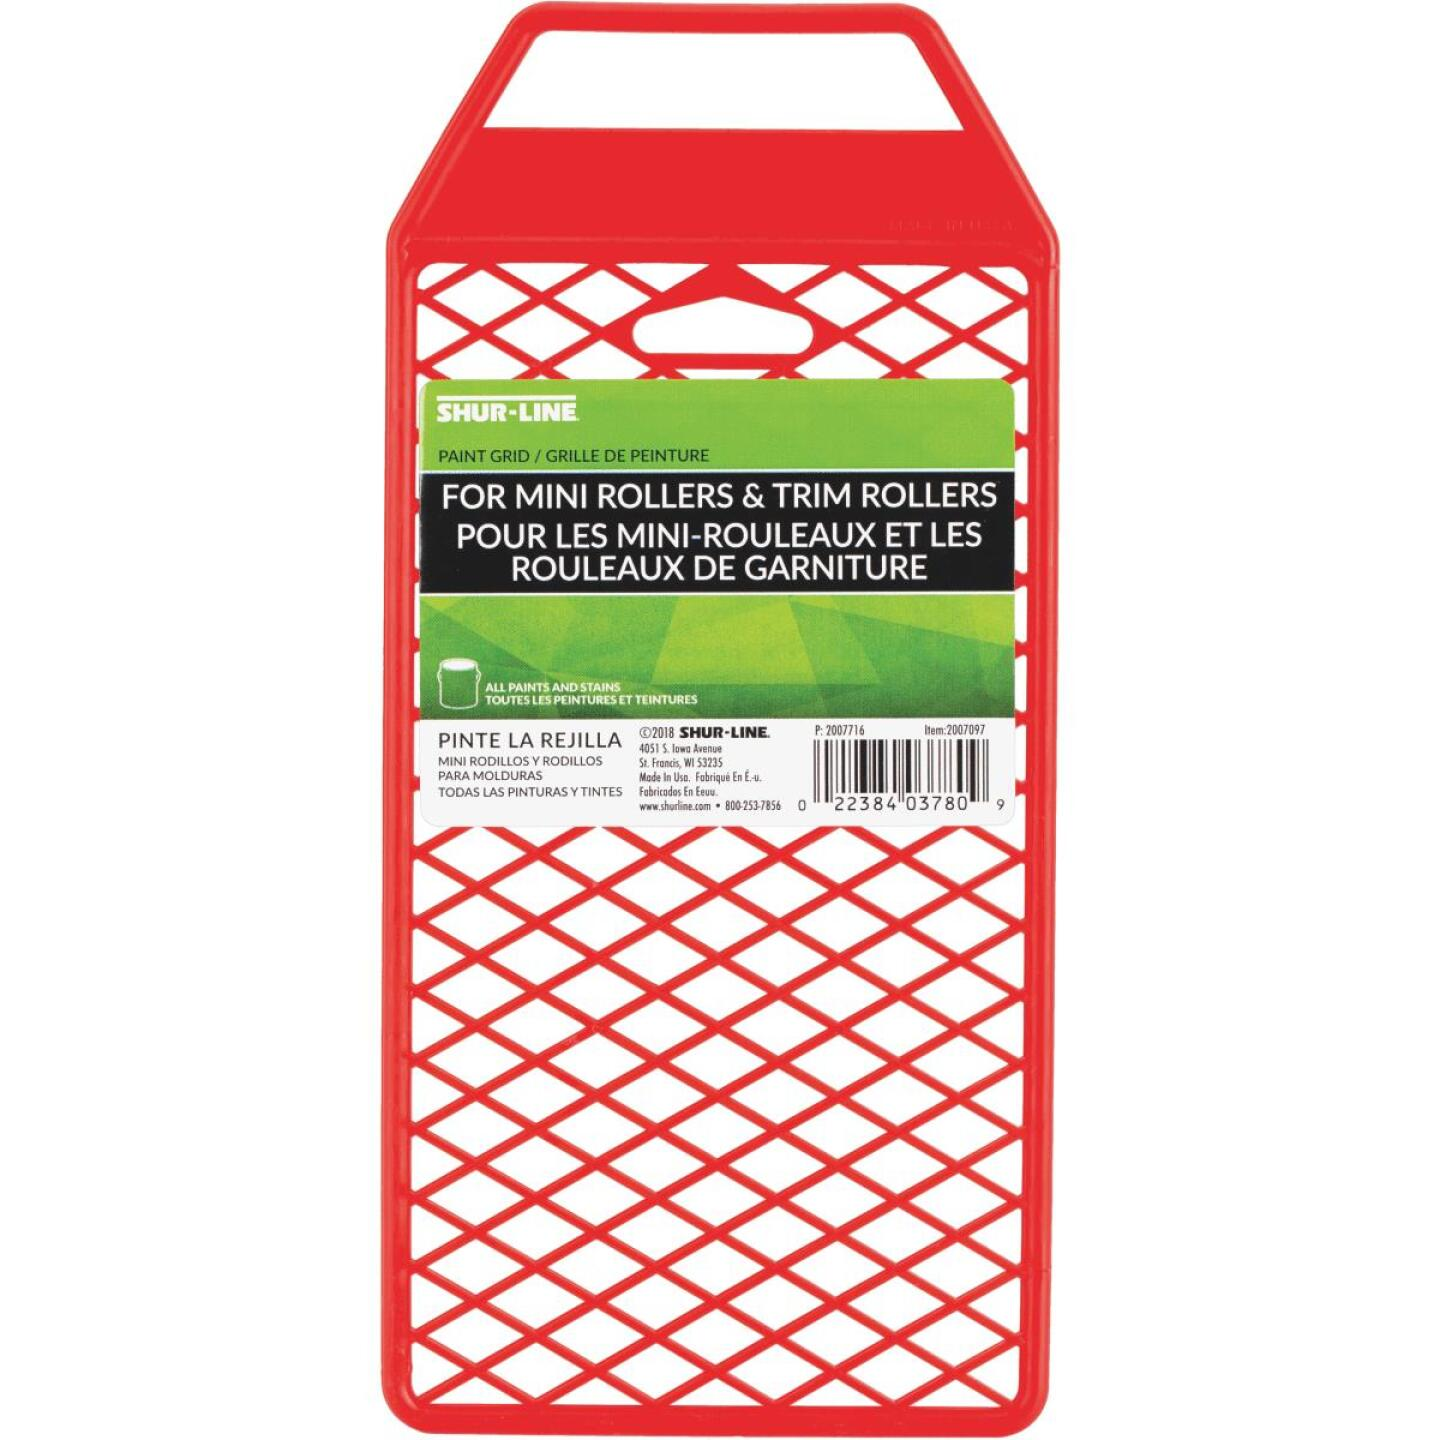 Shur-Line QuickPRO Gallon Poly Paint Roller Grid Image 1